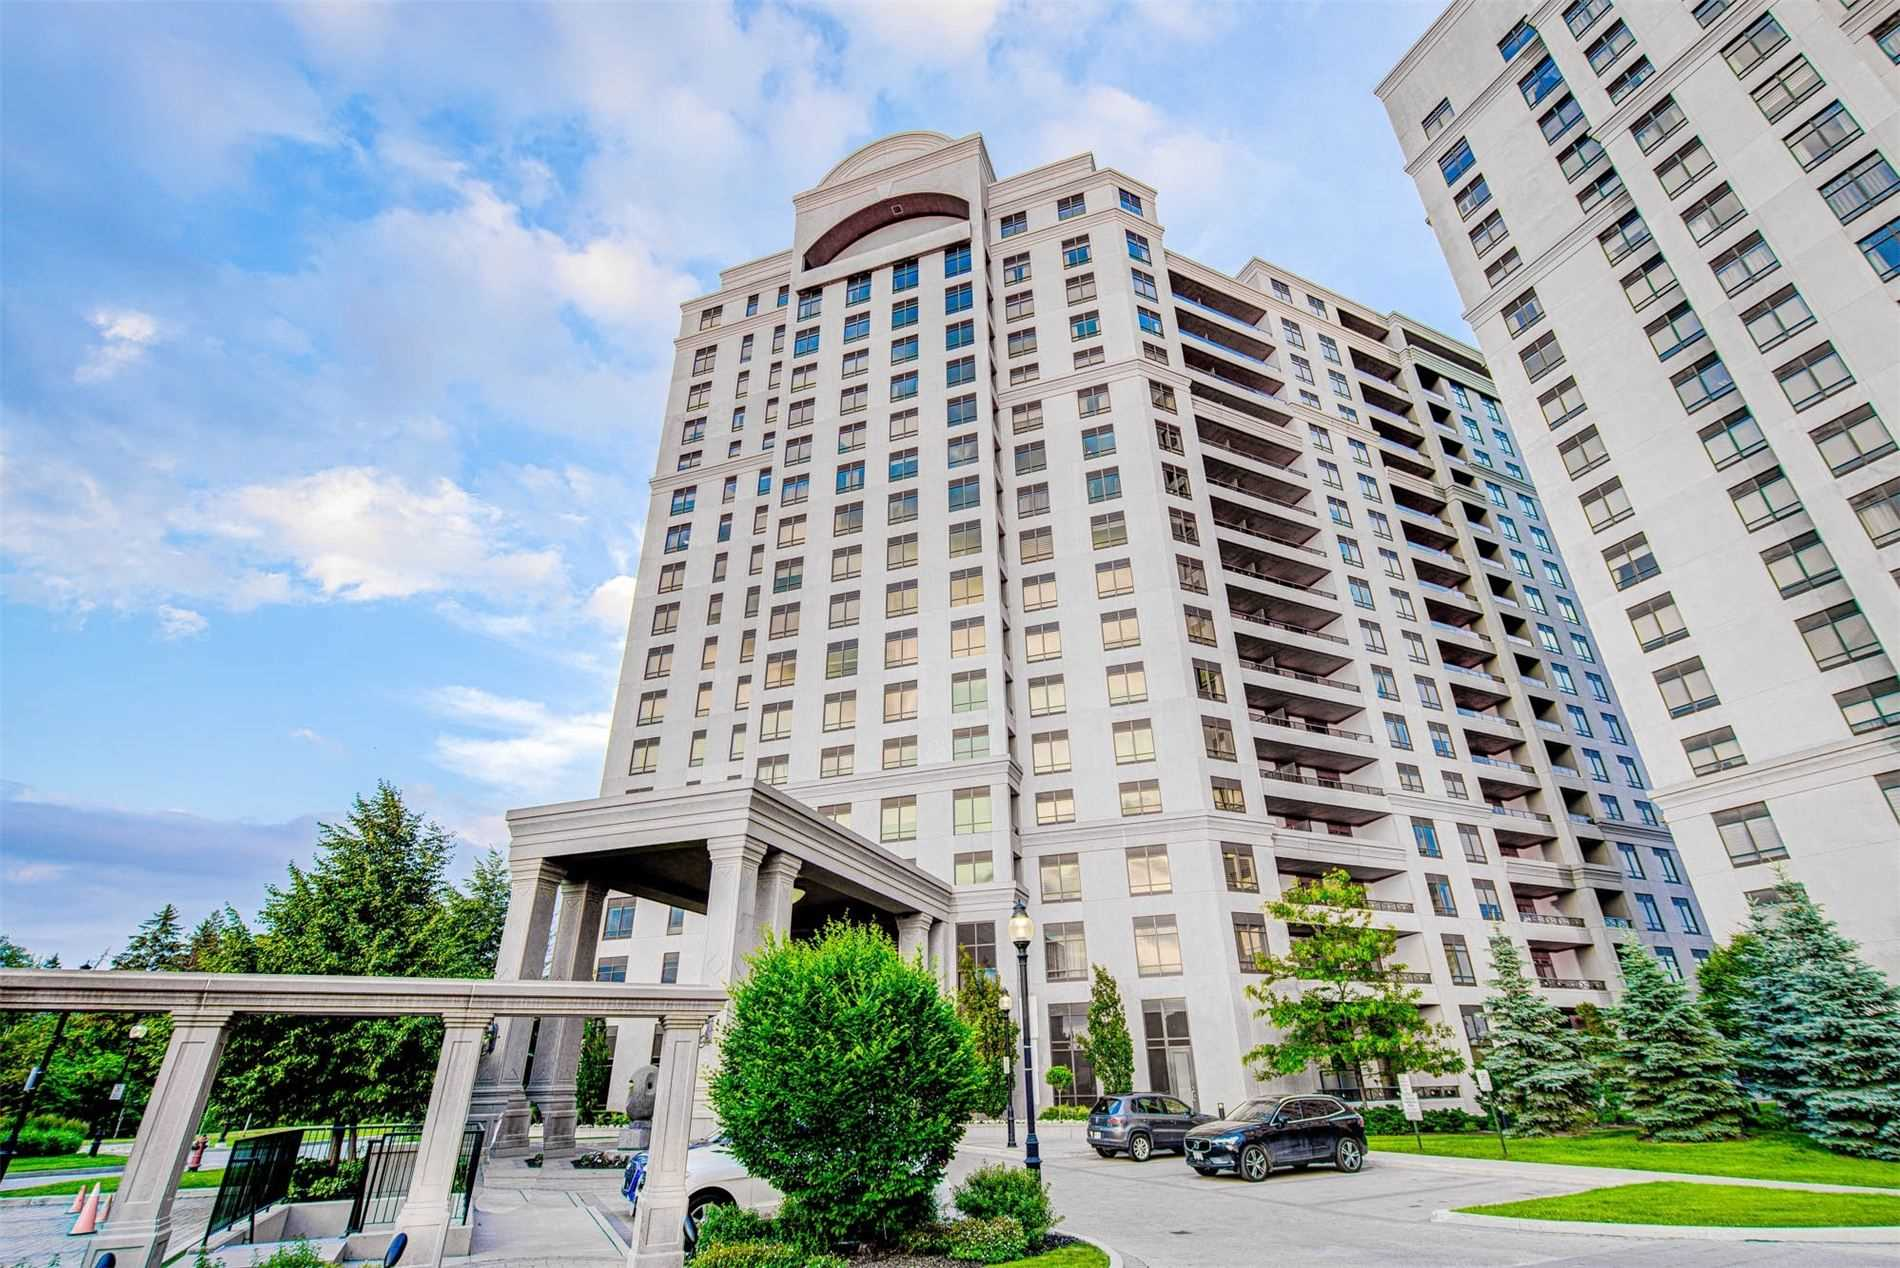 Image 1 of 39 showing inside of 2 Bedroom Condo Apt Apartment for Sale at 9255 Jane St Unit# 1603, Vaughan L6A0K1